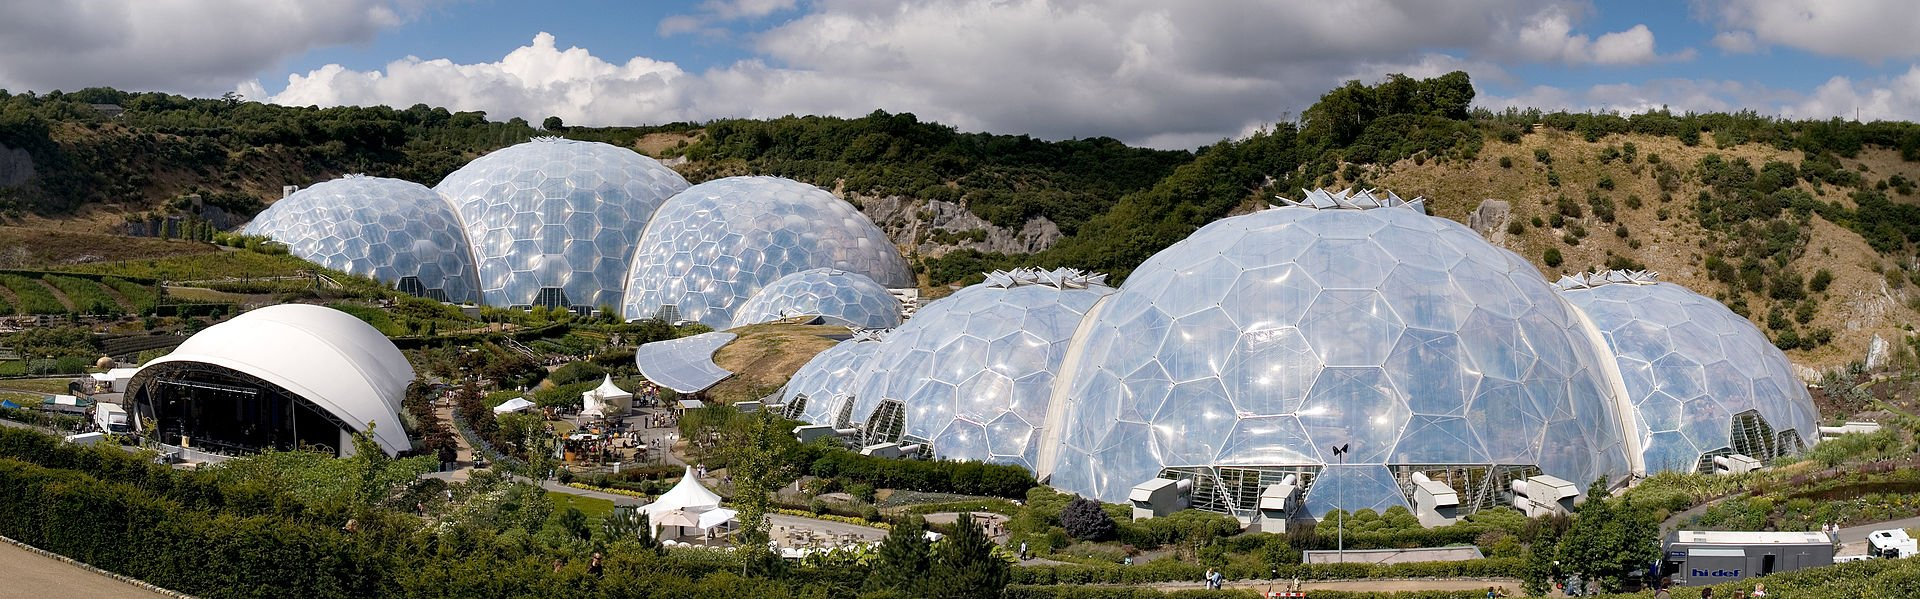 Click image for larger version  Name:Eden_Project.jpg Views:35 Size:393.1 KB ID:214873